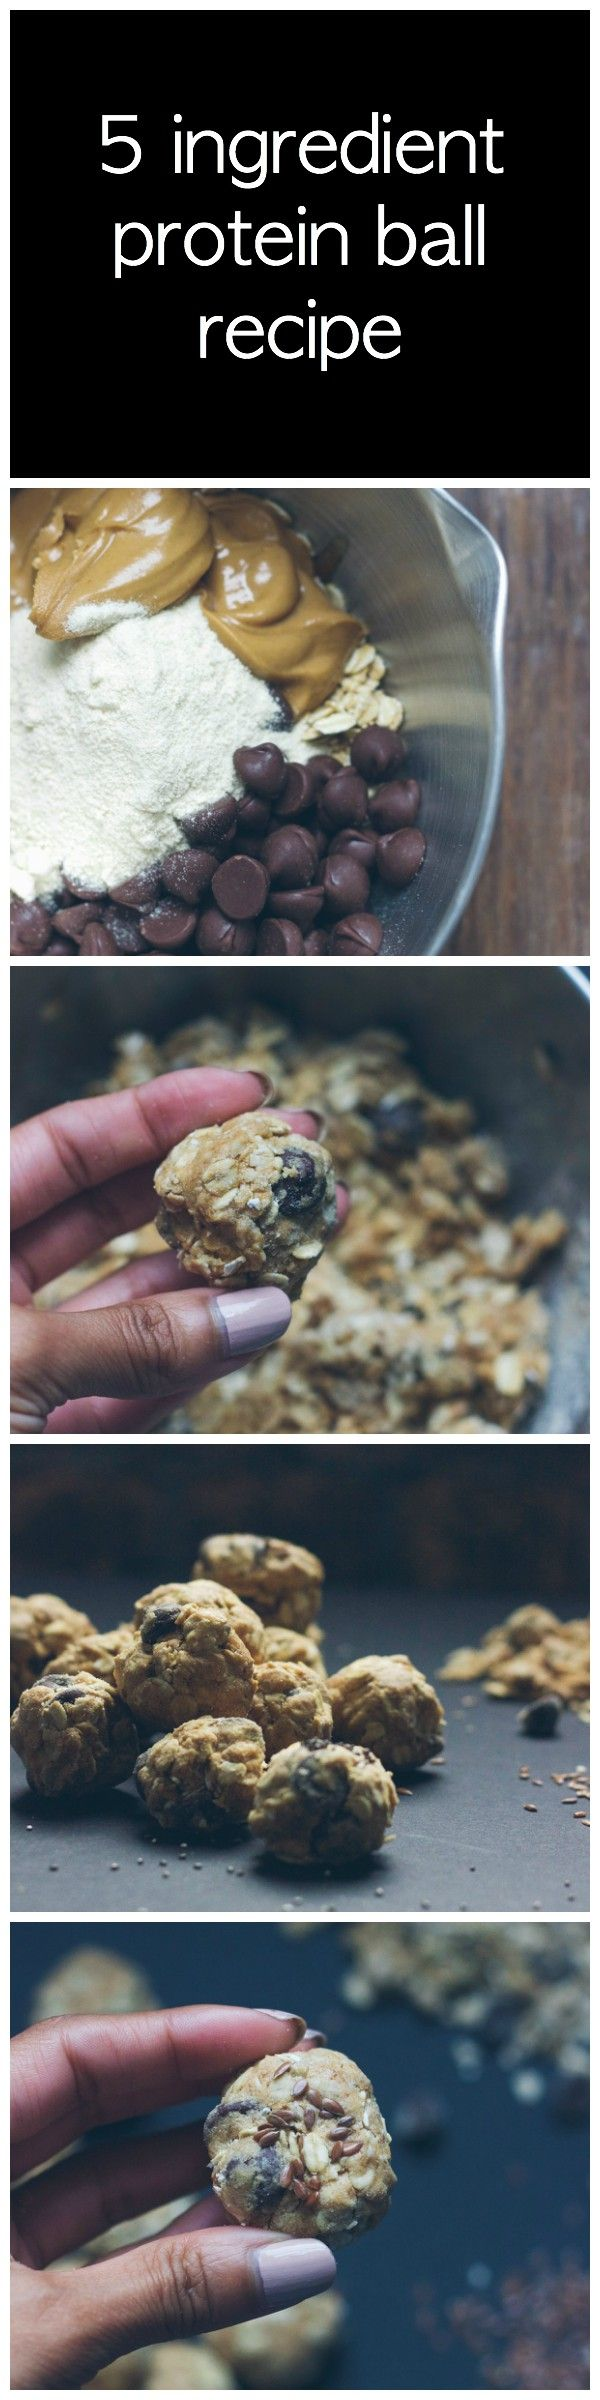 5 ingredient protein ball recipe that takes under 30 minutes! healthy snack, protein recipe